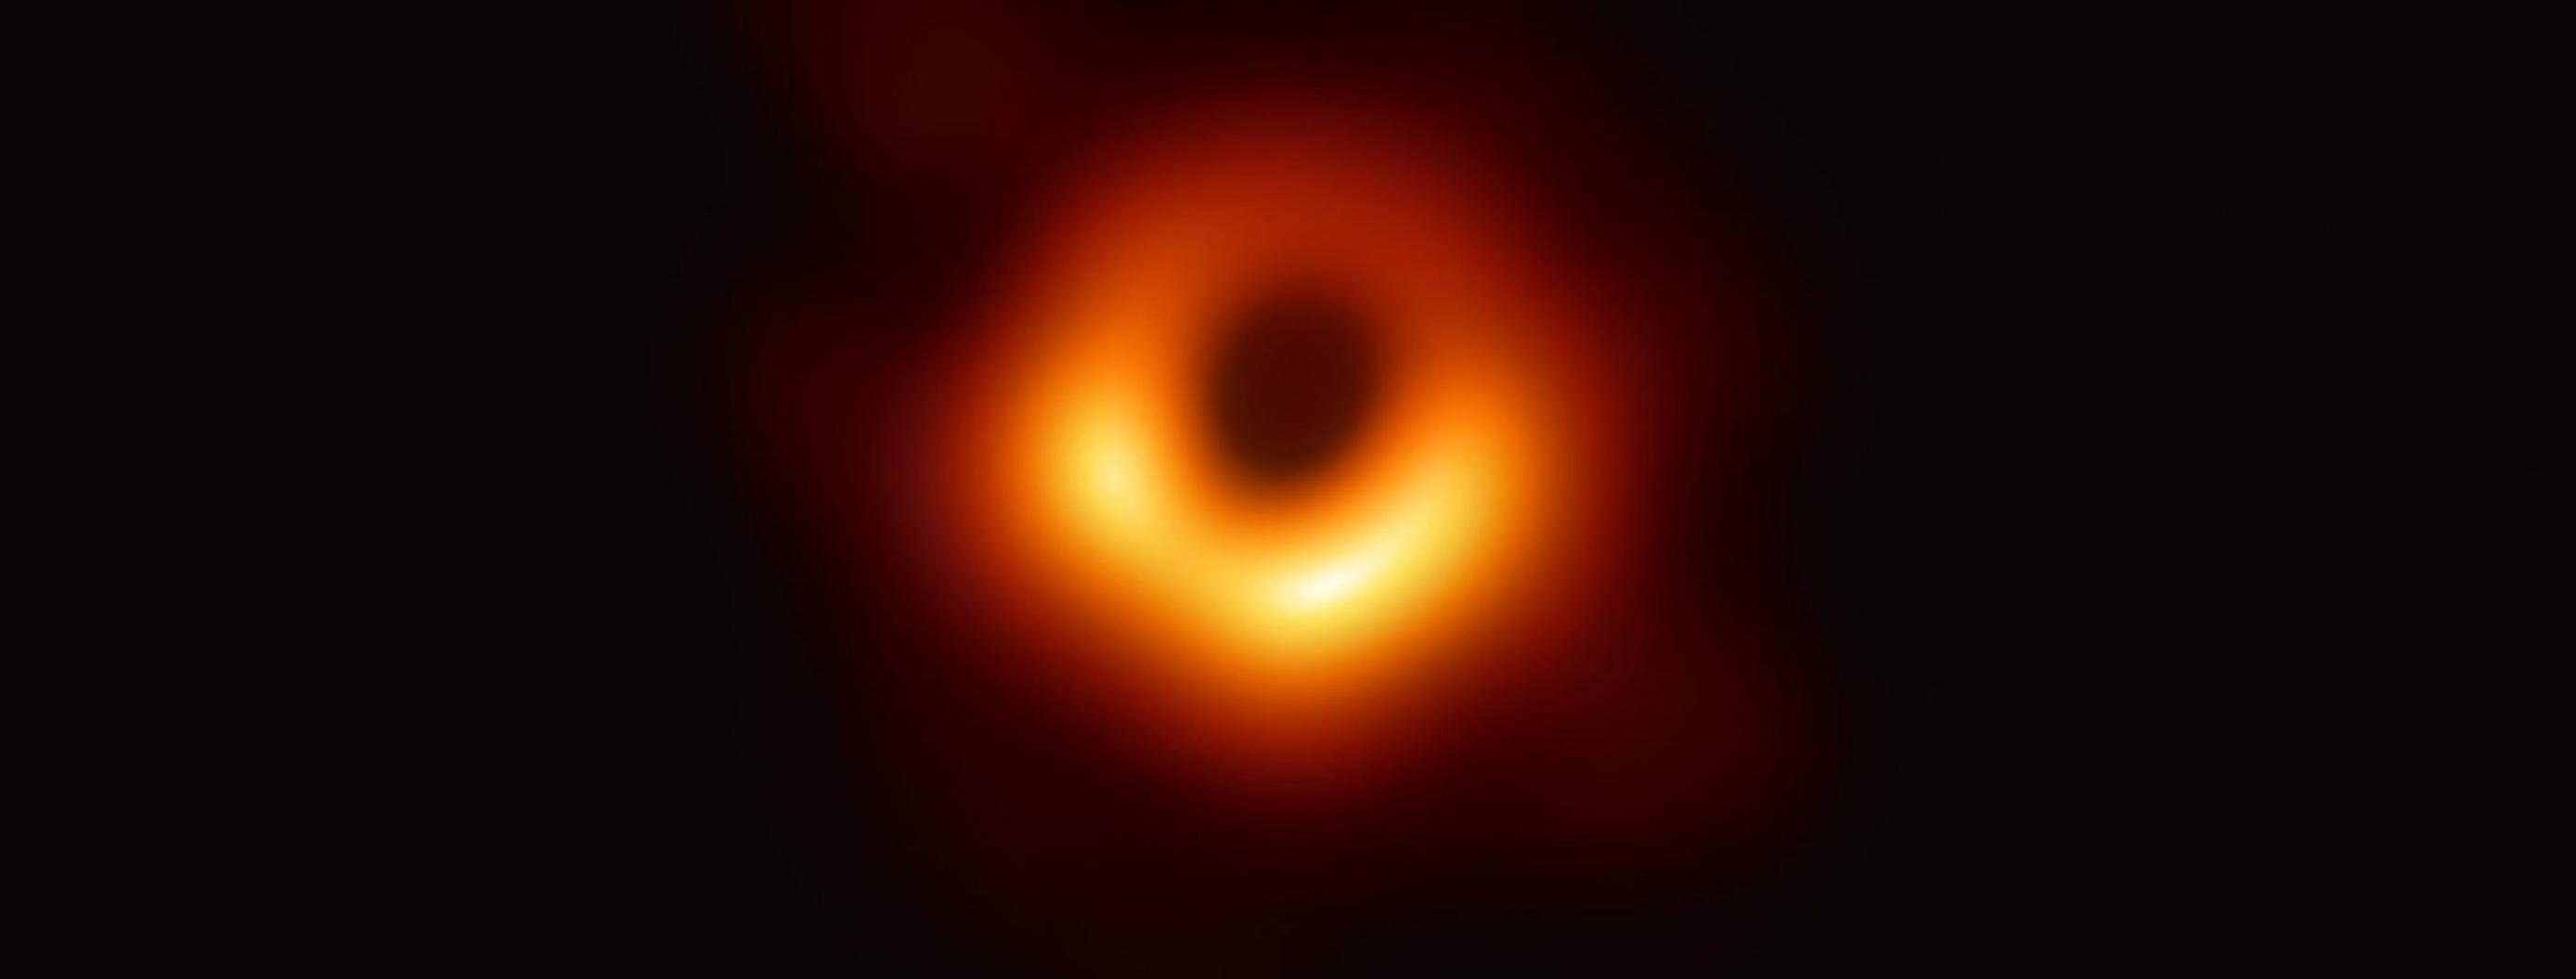 Brace Yourself: Here is the First Ever Image of a Real Black Hole